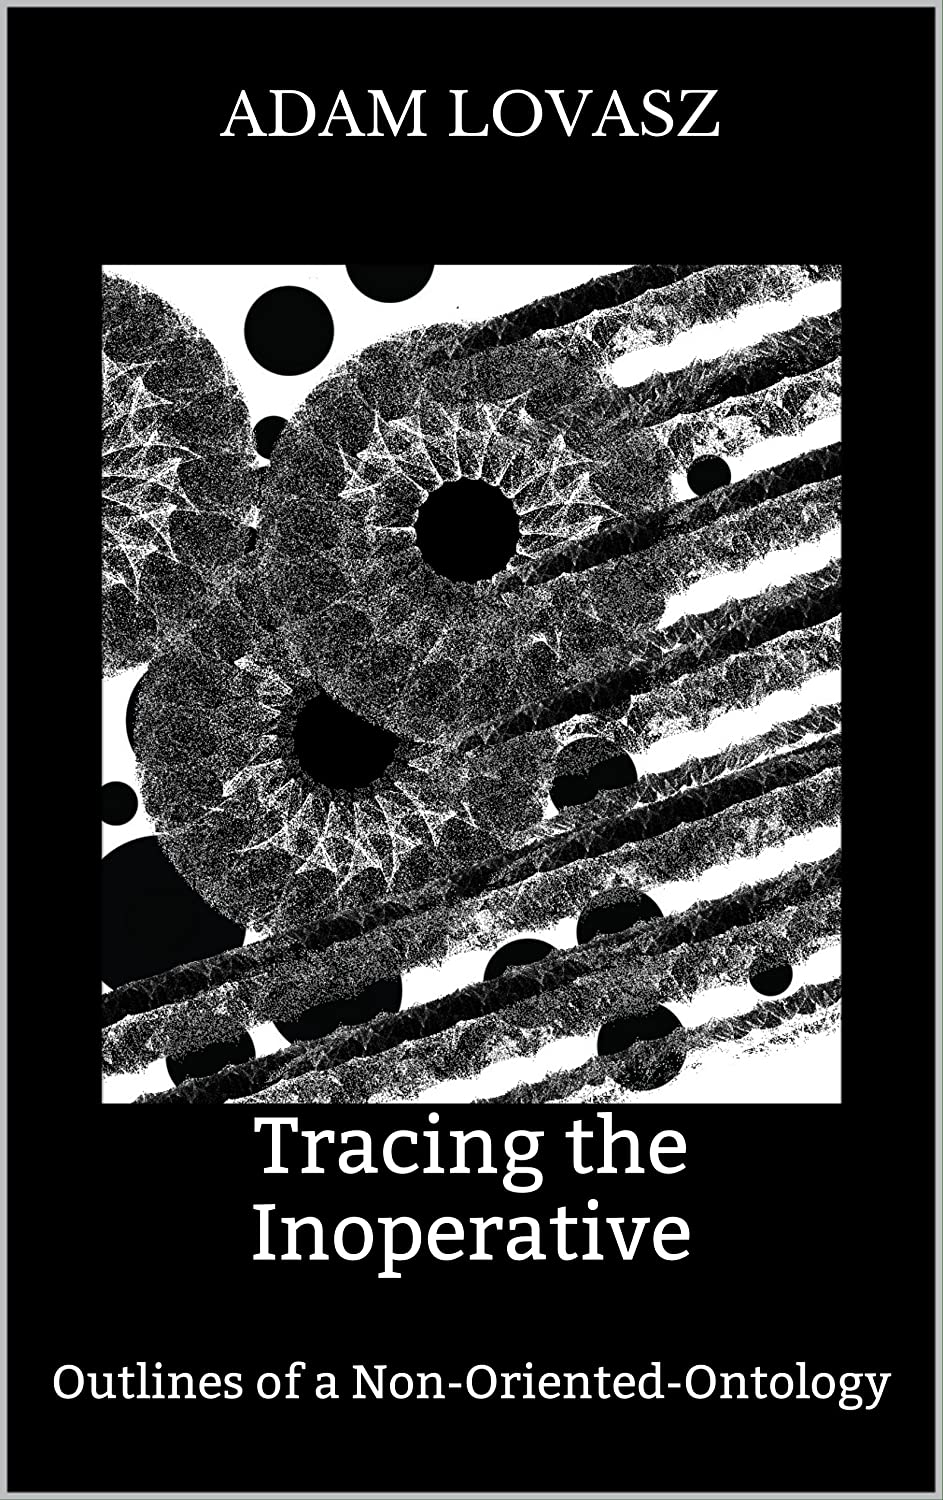 Image result for Ádám Lovász, Tracing the Inoperative: Outlines of a Non-Oriented-Ontology,